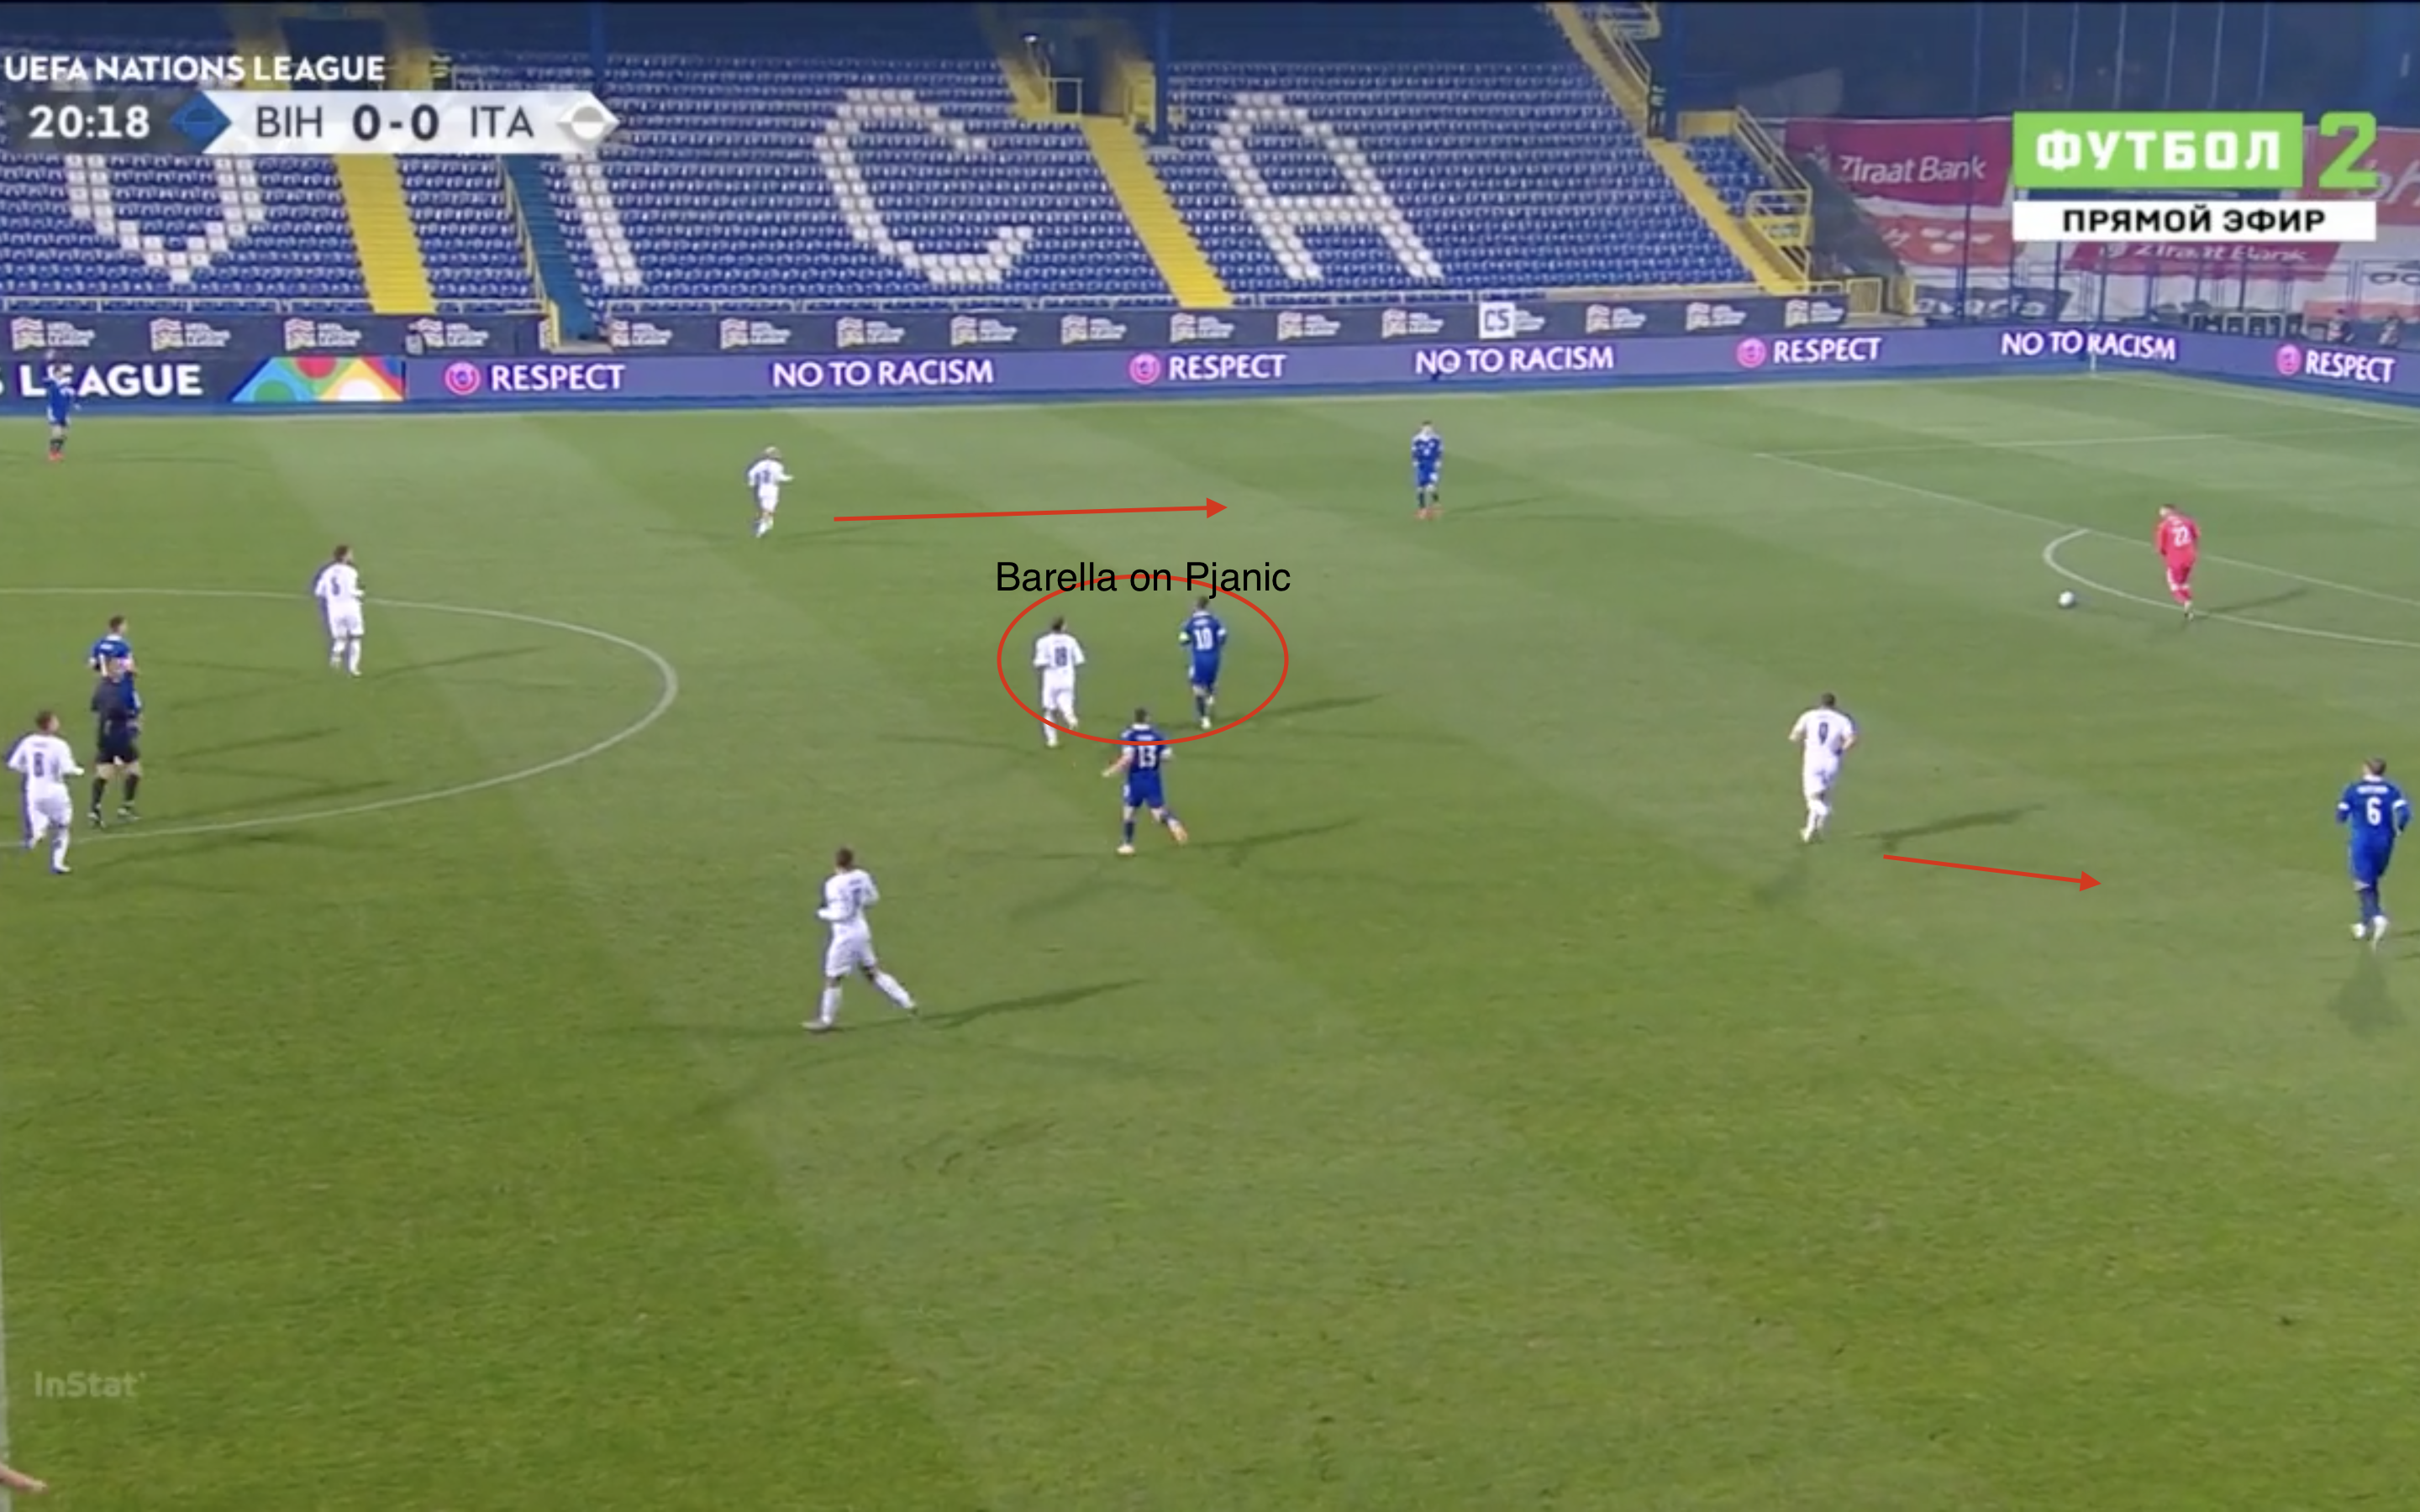 UEFA Nations League 2020-21: Bosnia-Herzegovina vs Italy - tactical analysis tactics